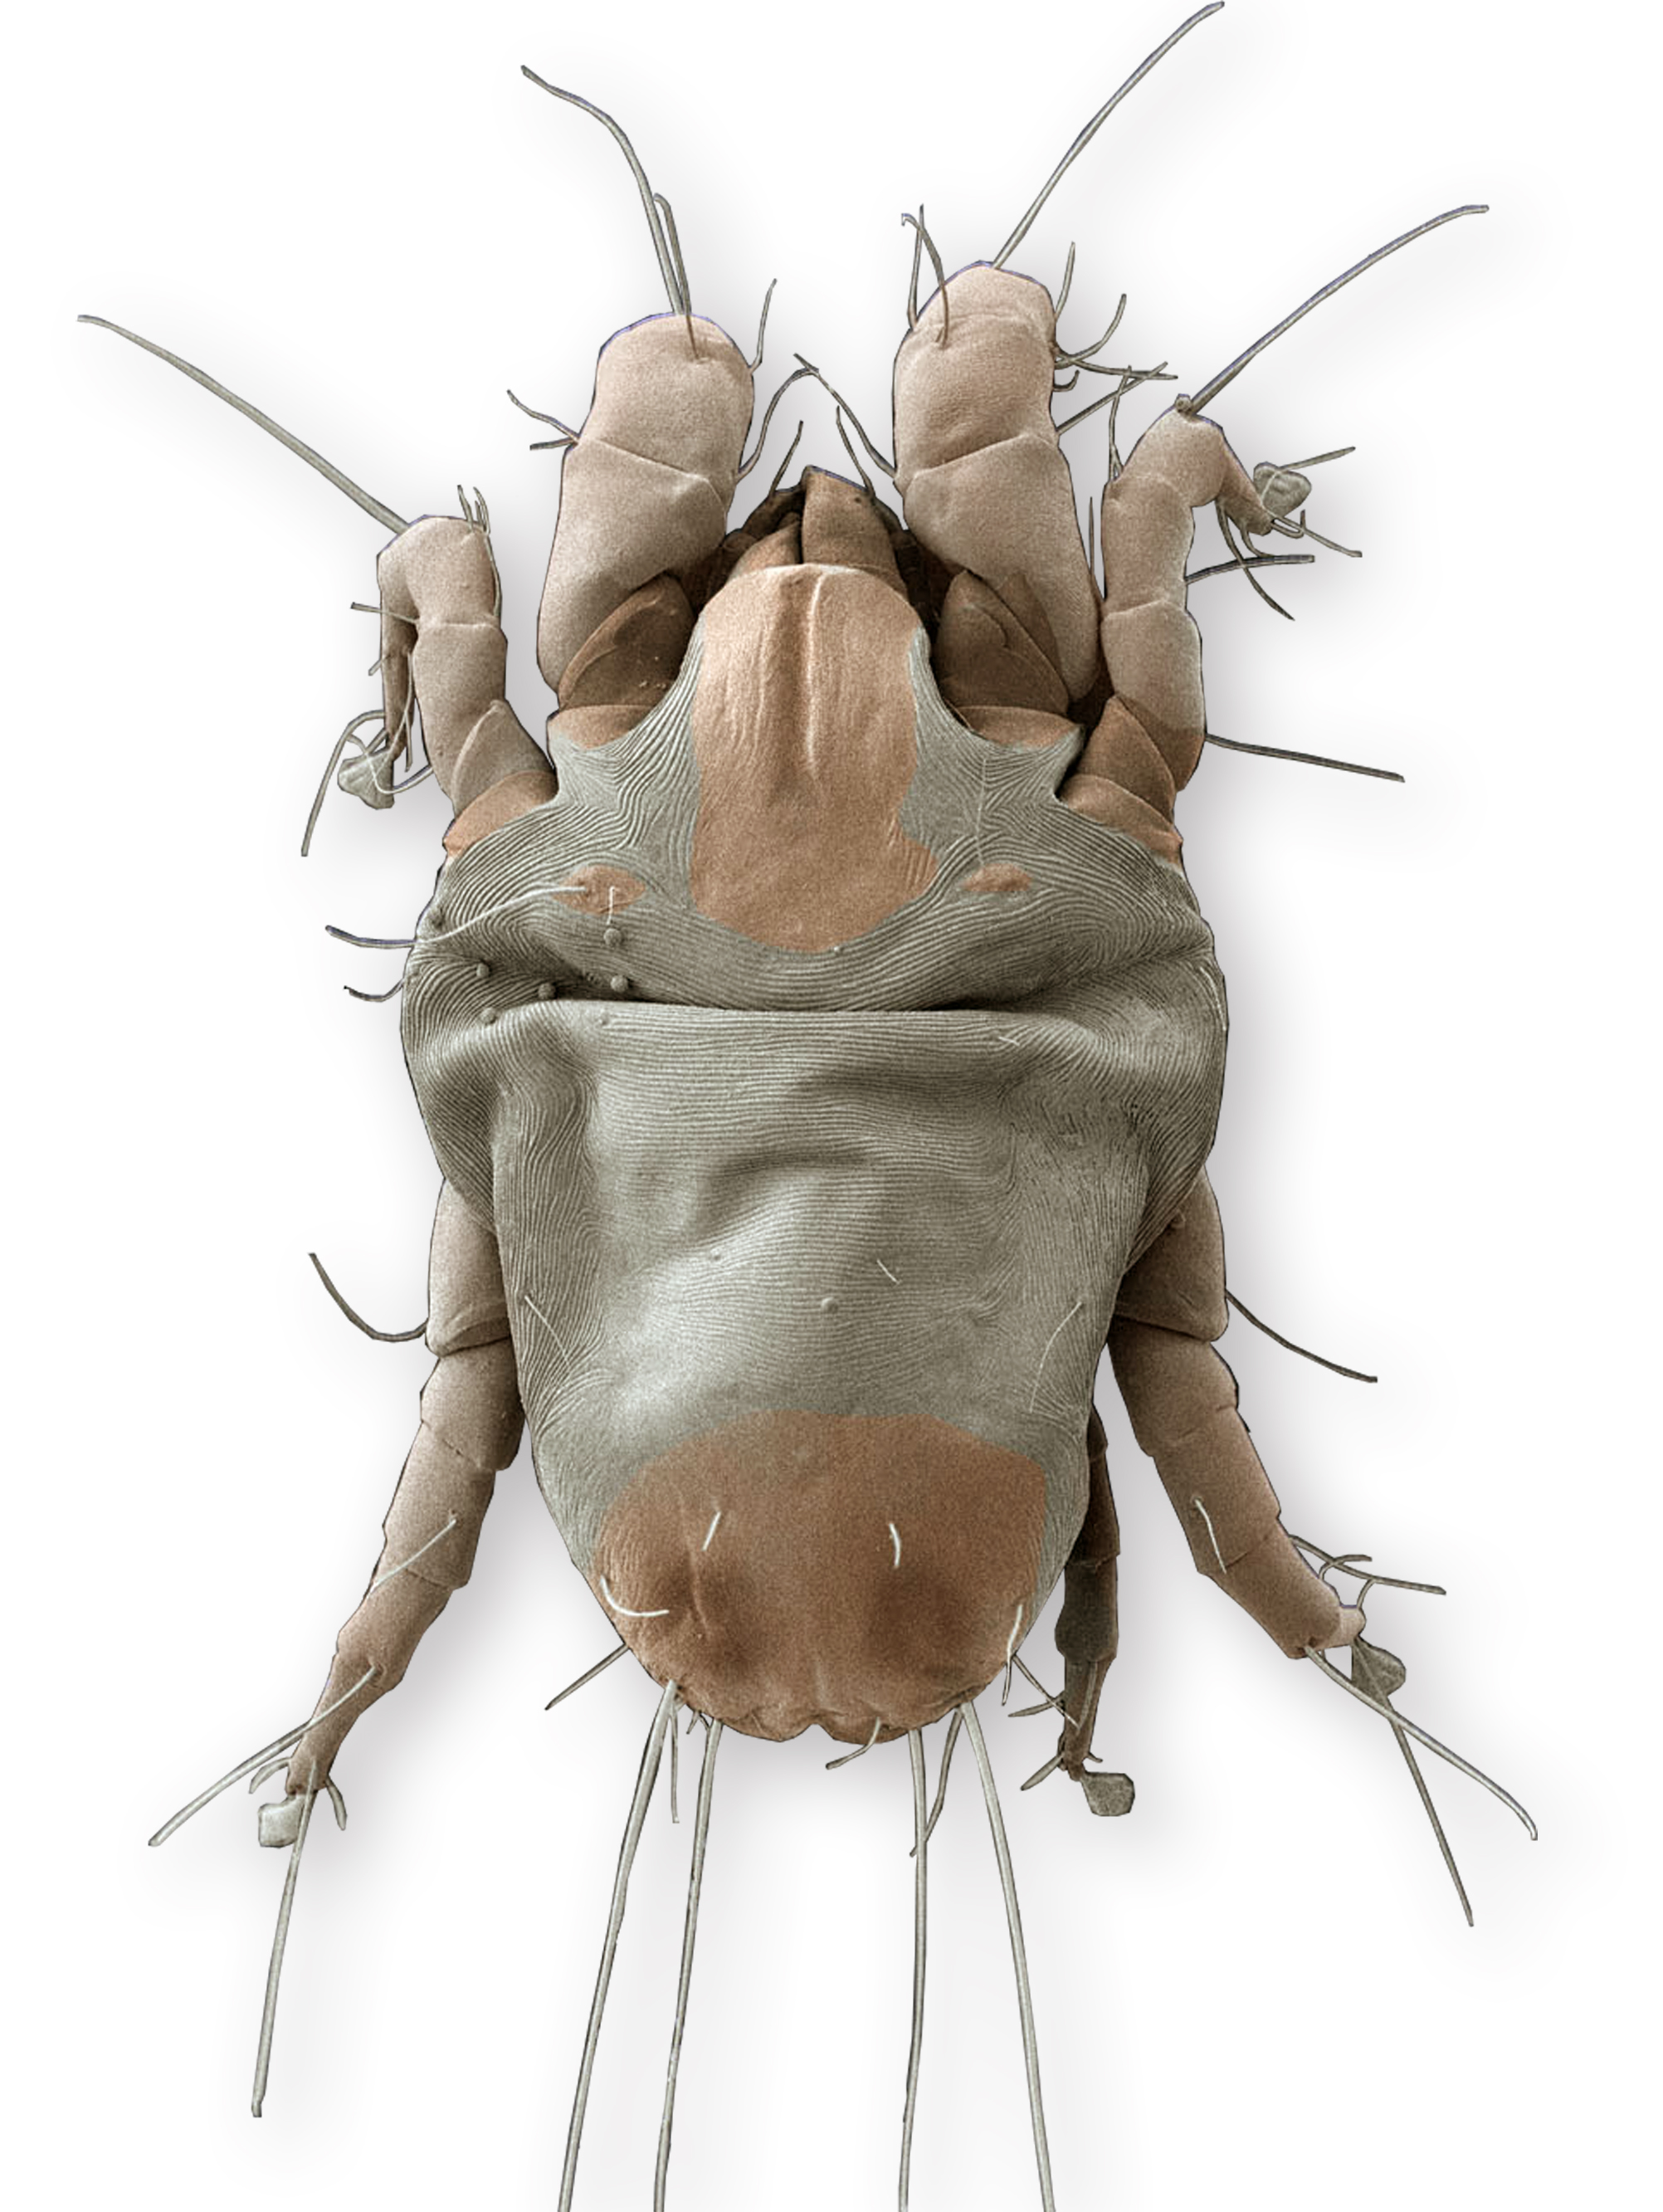 A scanning electron microscope image of an American house dust mite. Image credit: G. Bauchan and R. Ochoa